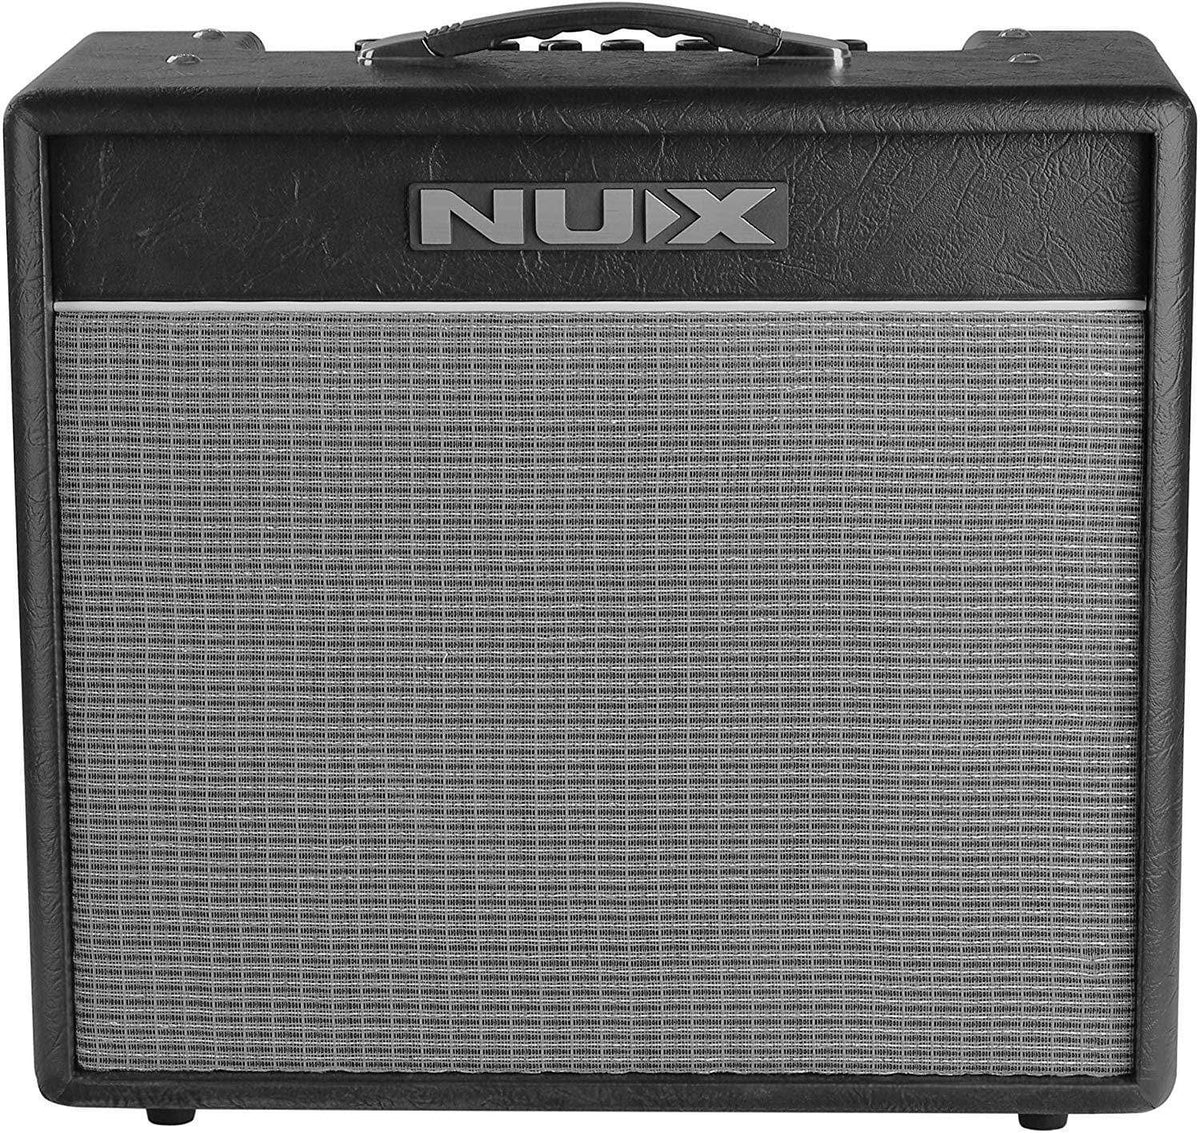 "NUX Mighty 40 BT 10"" 40W 4 Channels"